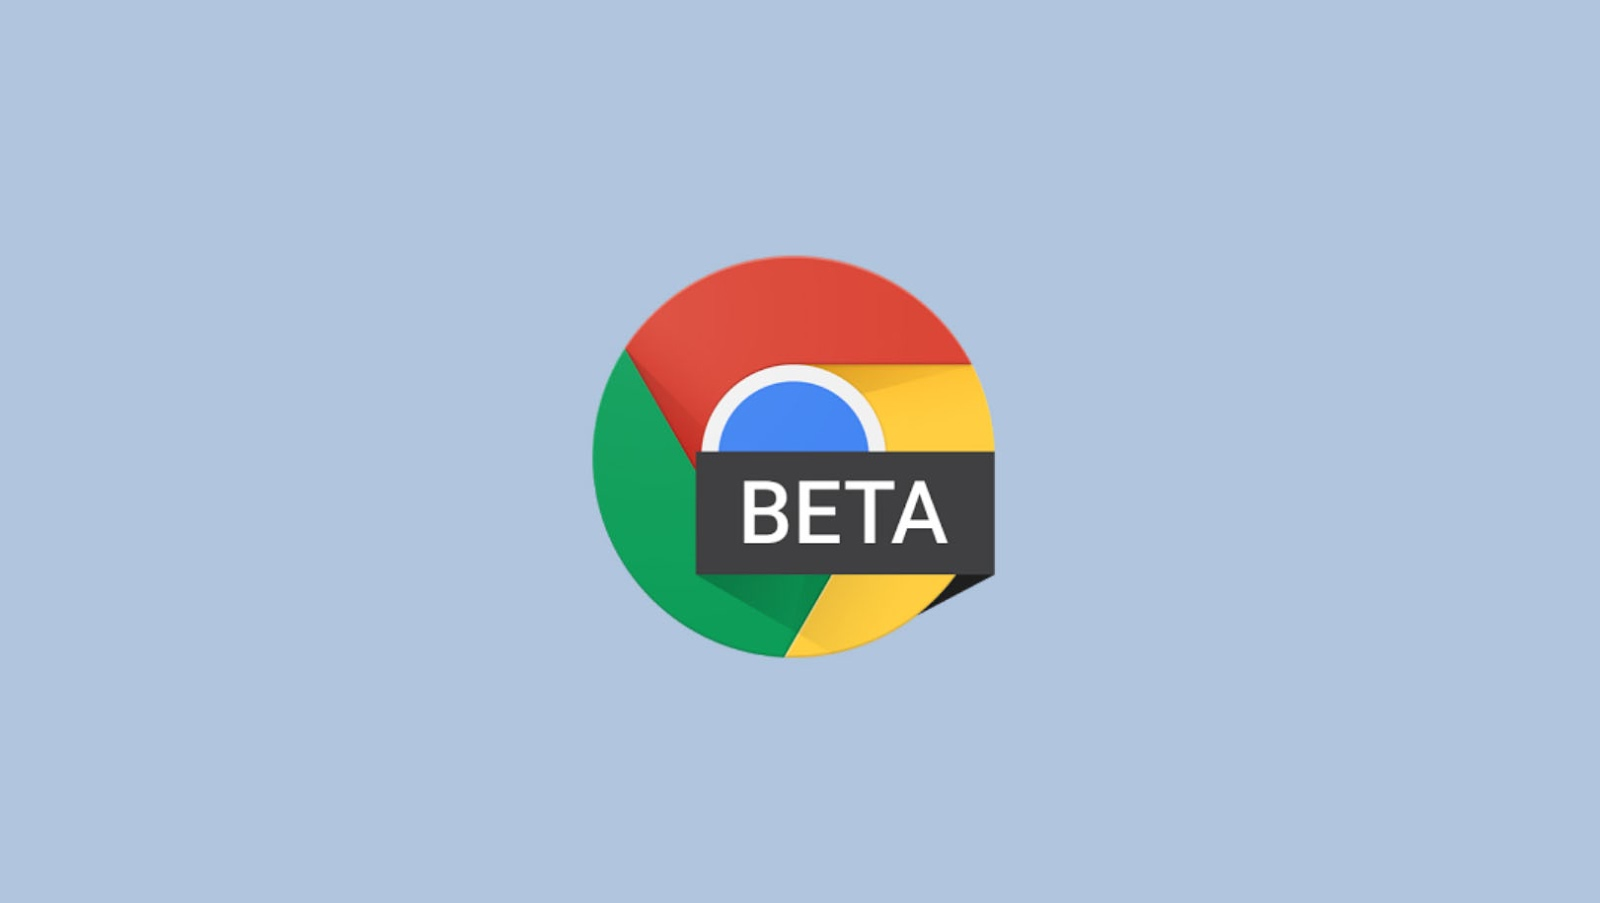 Chrome Beta v51 Brings New Login Experience Similar To Smart Lock and Renders Pages More Efficiently